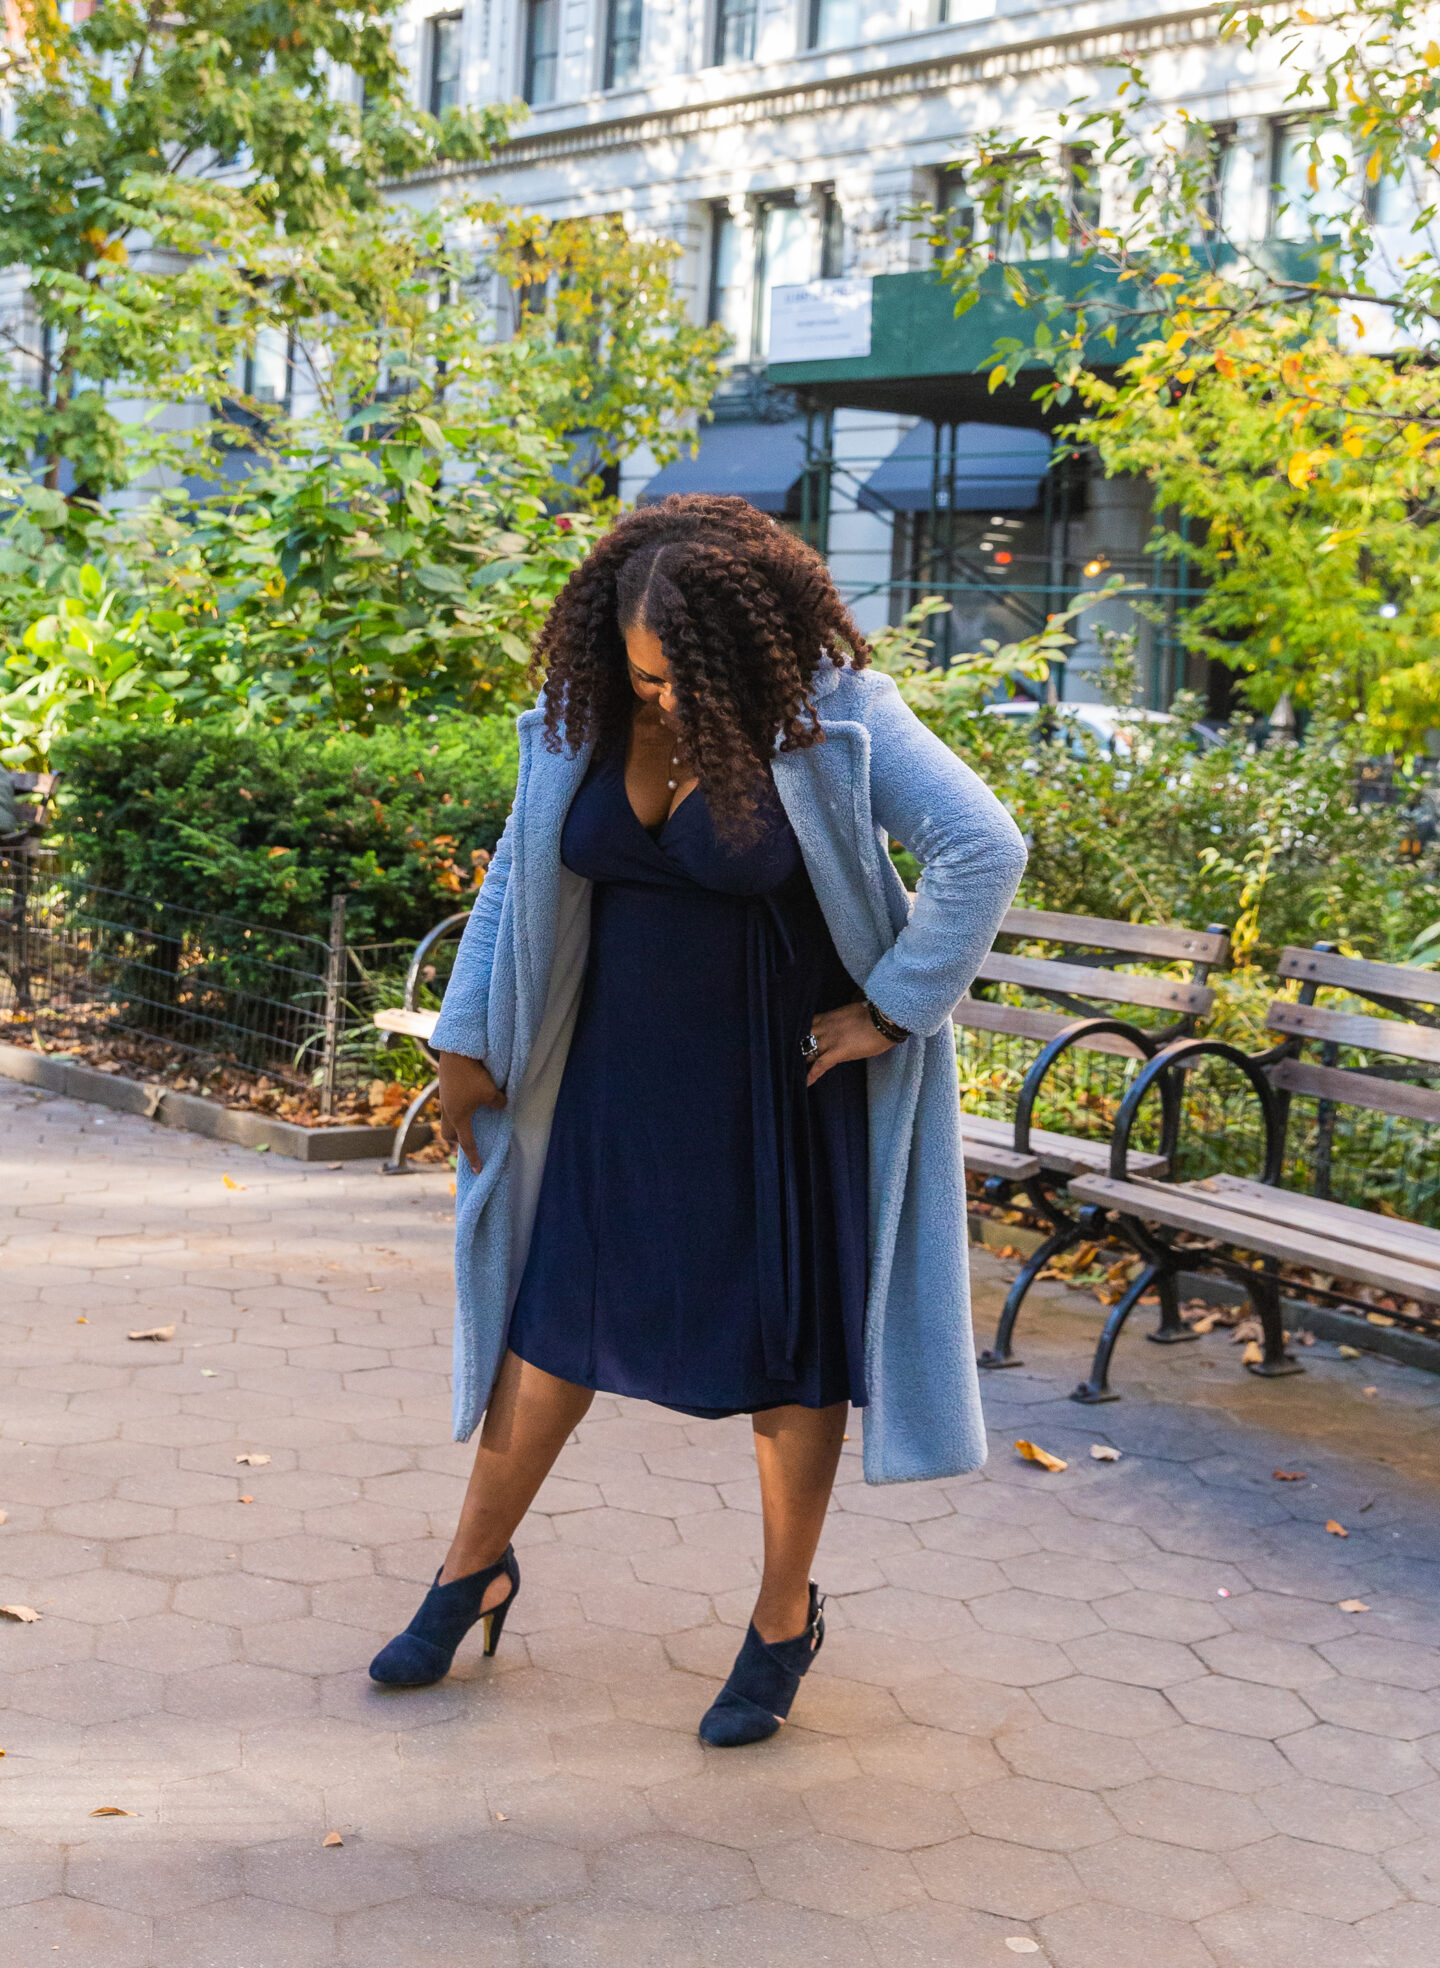 patranila wears blue wrap dress by kiyonna and blue teddy coat by something navy